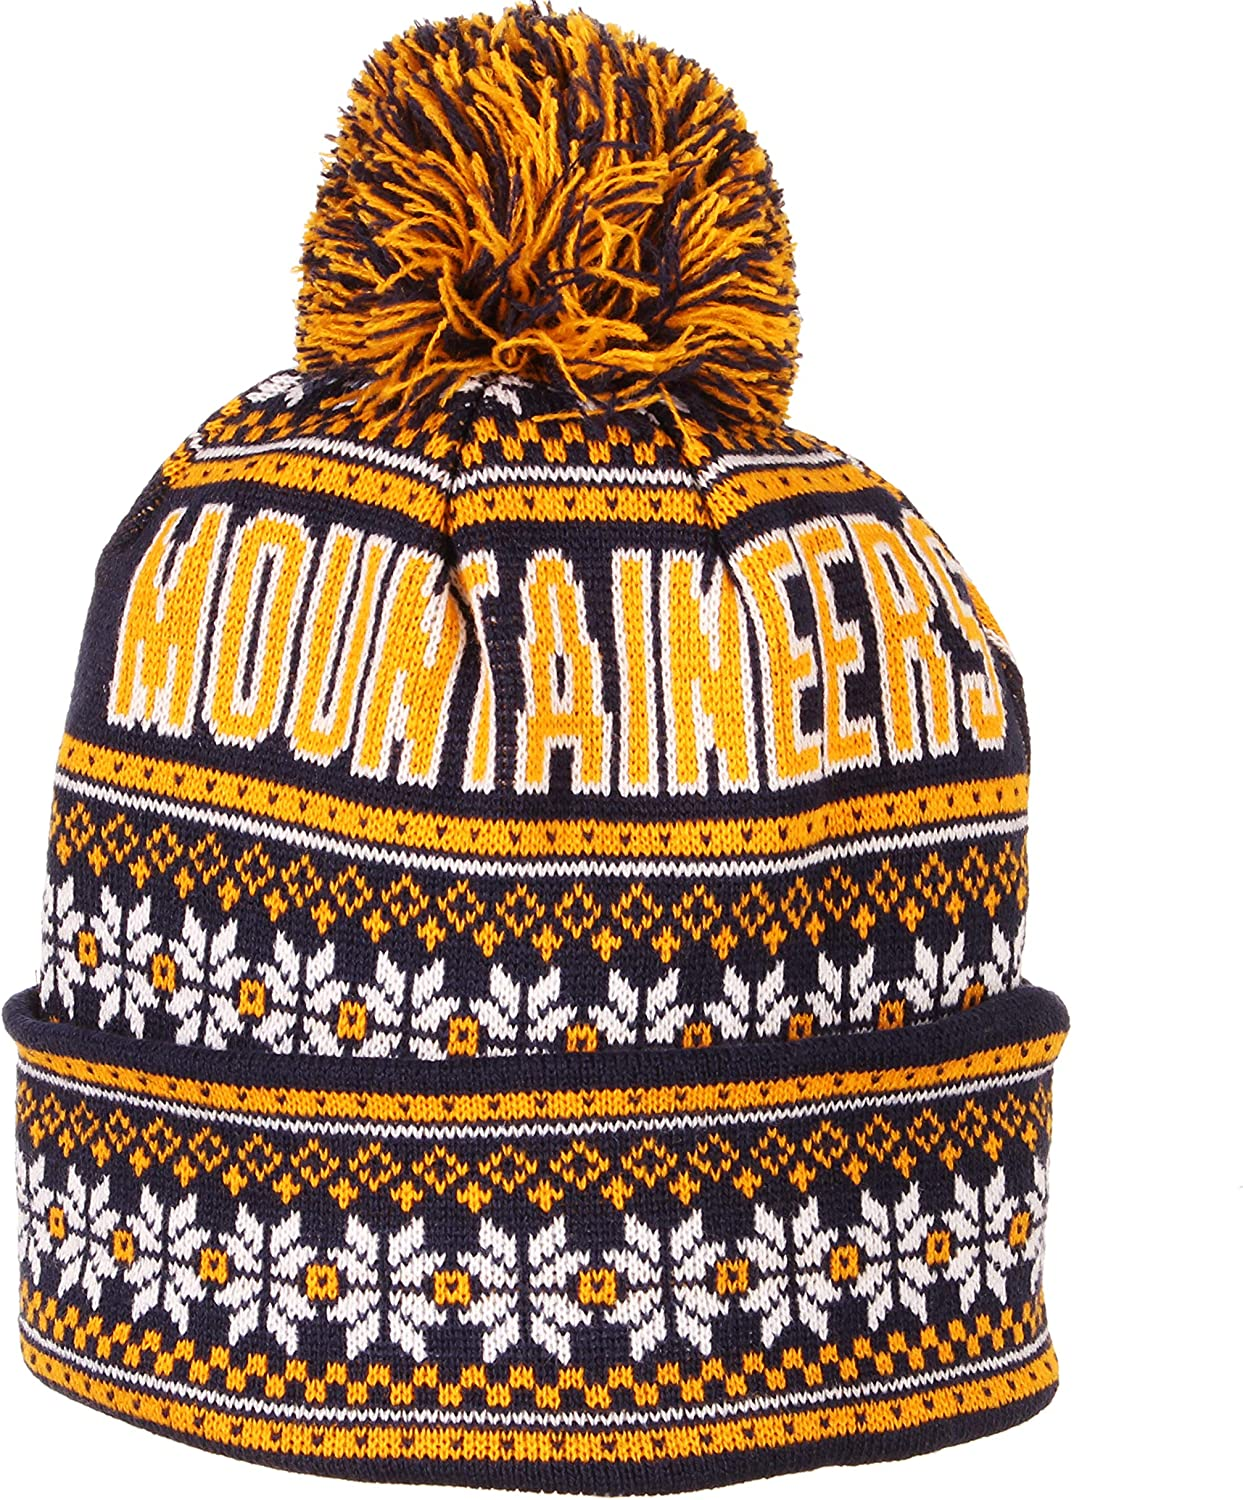 Team Color One Size Fits Most NCAA Zephyr West Virginia Mountaineers Mens Blitzen Cuffed Pom Knit Beanie